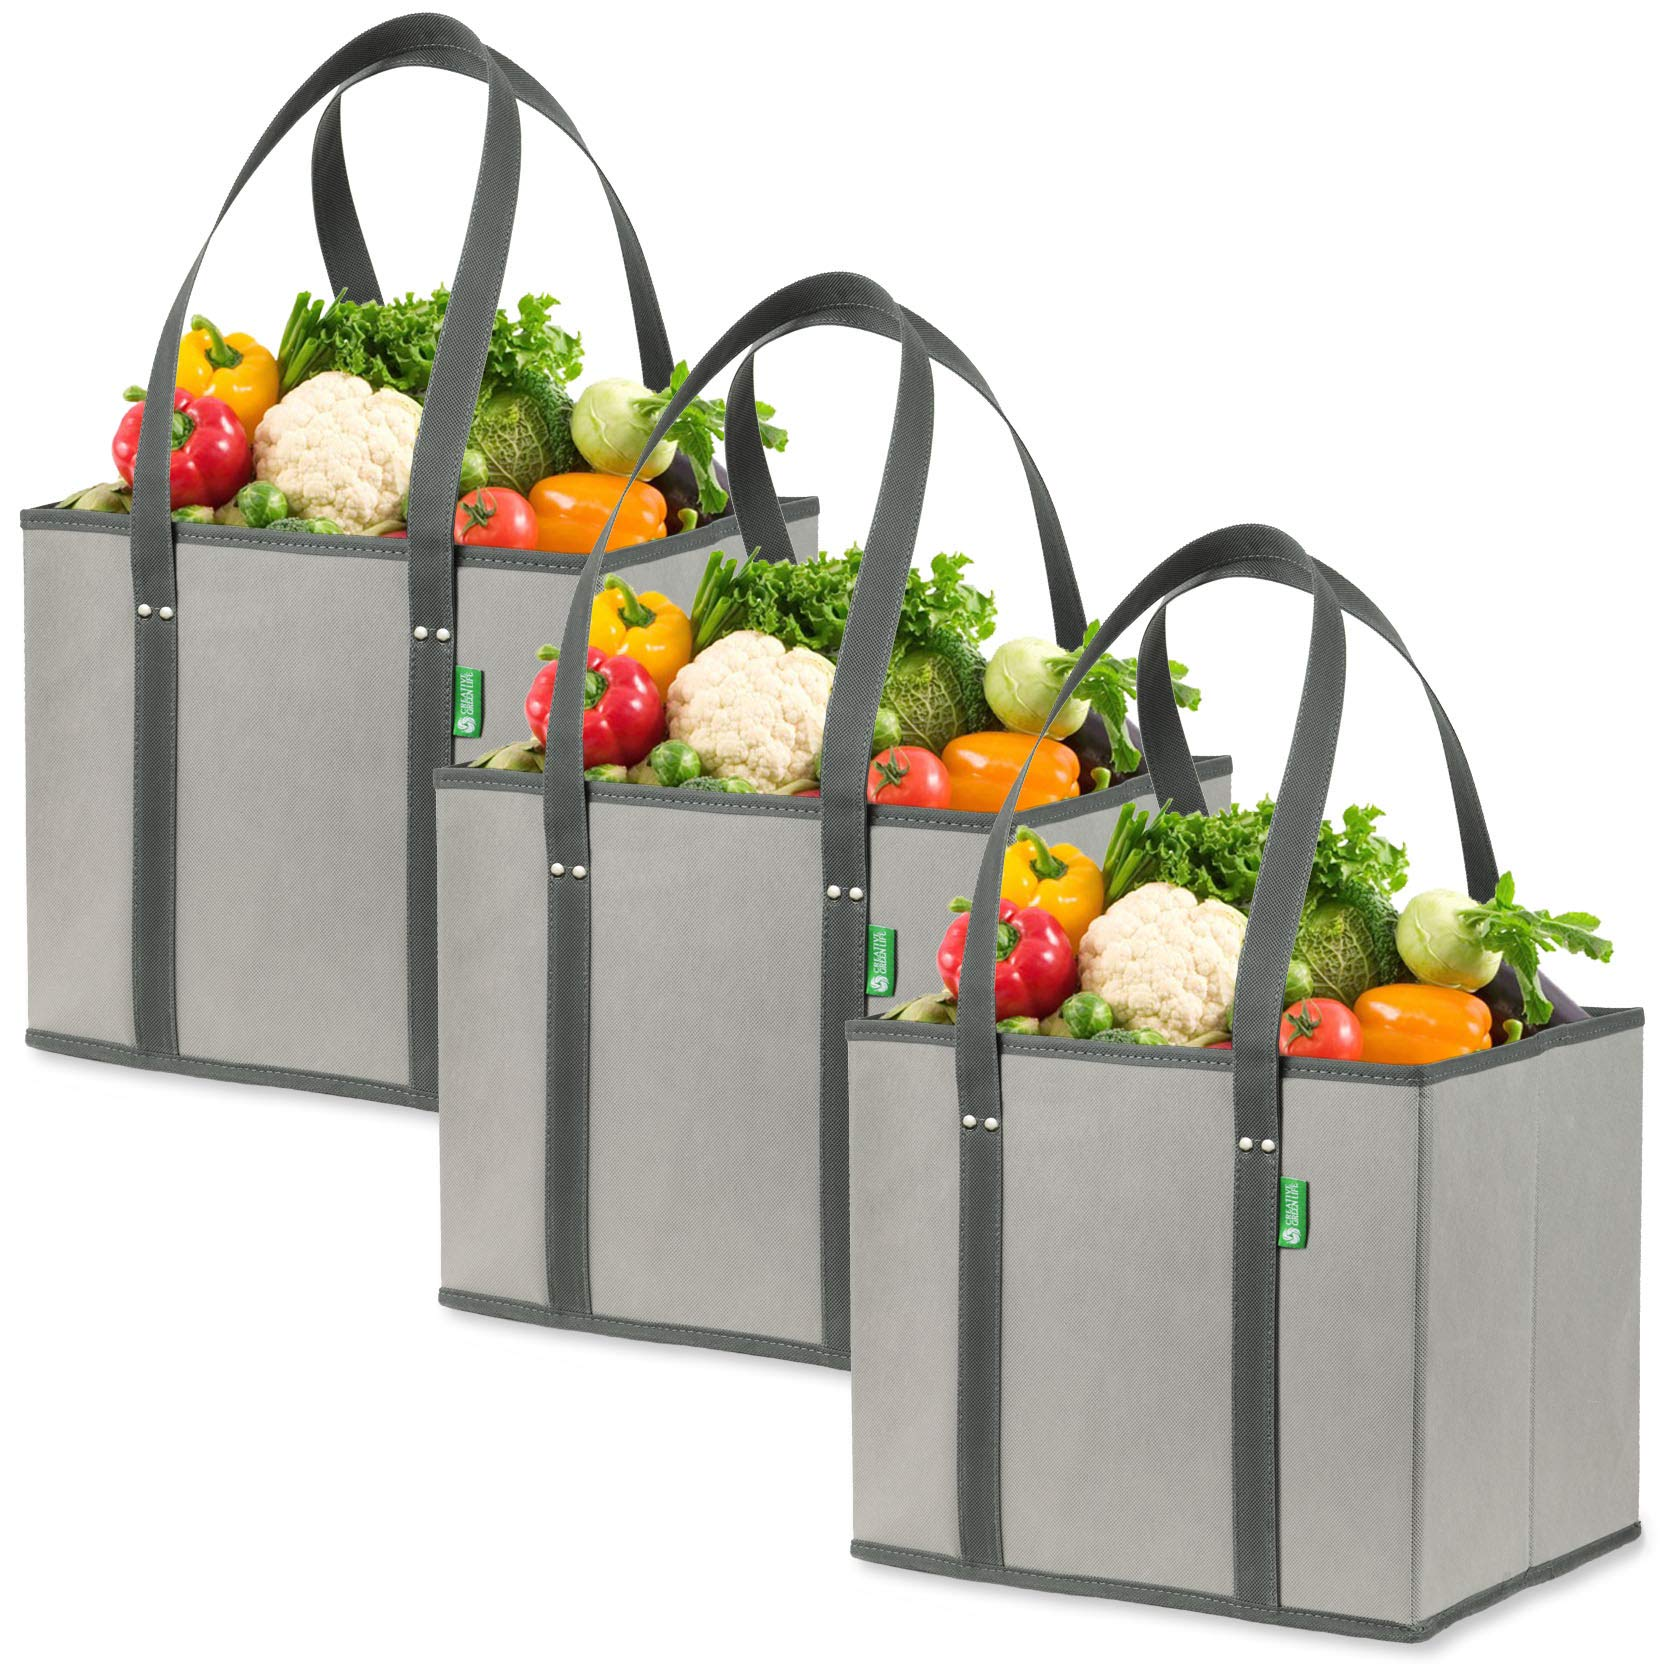 Reusable Grocery Shopping Box Bags (3 Pack - Gray). Large, Premium Quality Heavy Duty Tote Bag Set with Extra Long Handles & Reinforced Bottom. Foldable, Collapsible, Durable & Eco Friendly by Creative Green Life (Image #1)